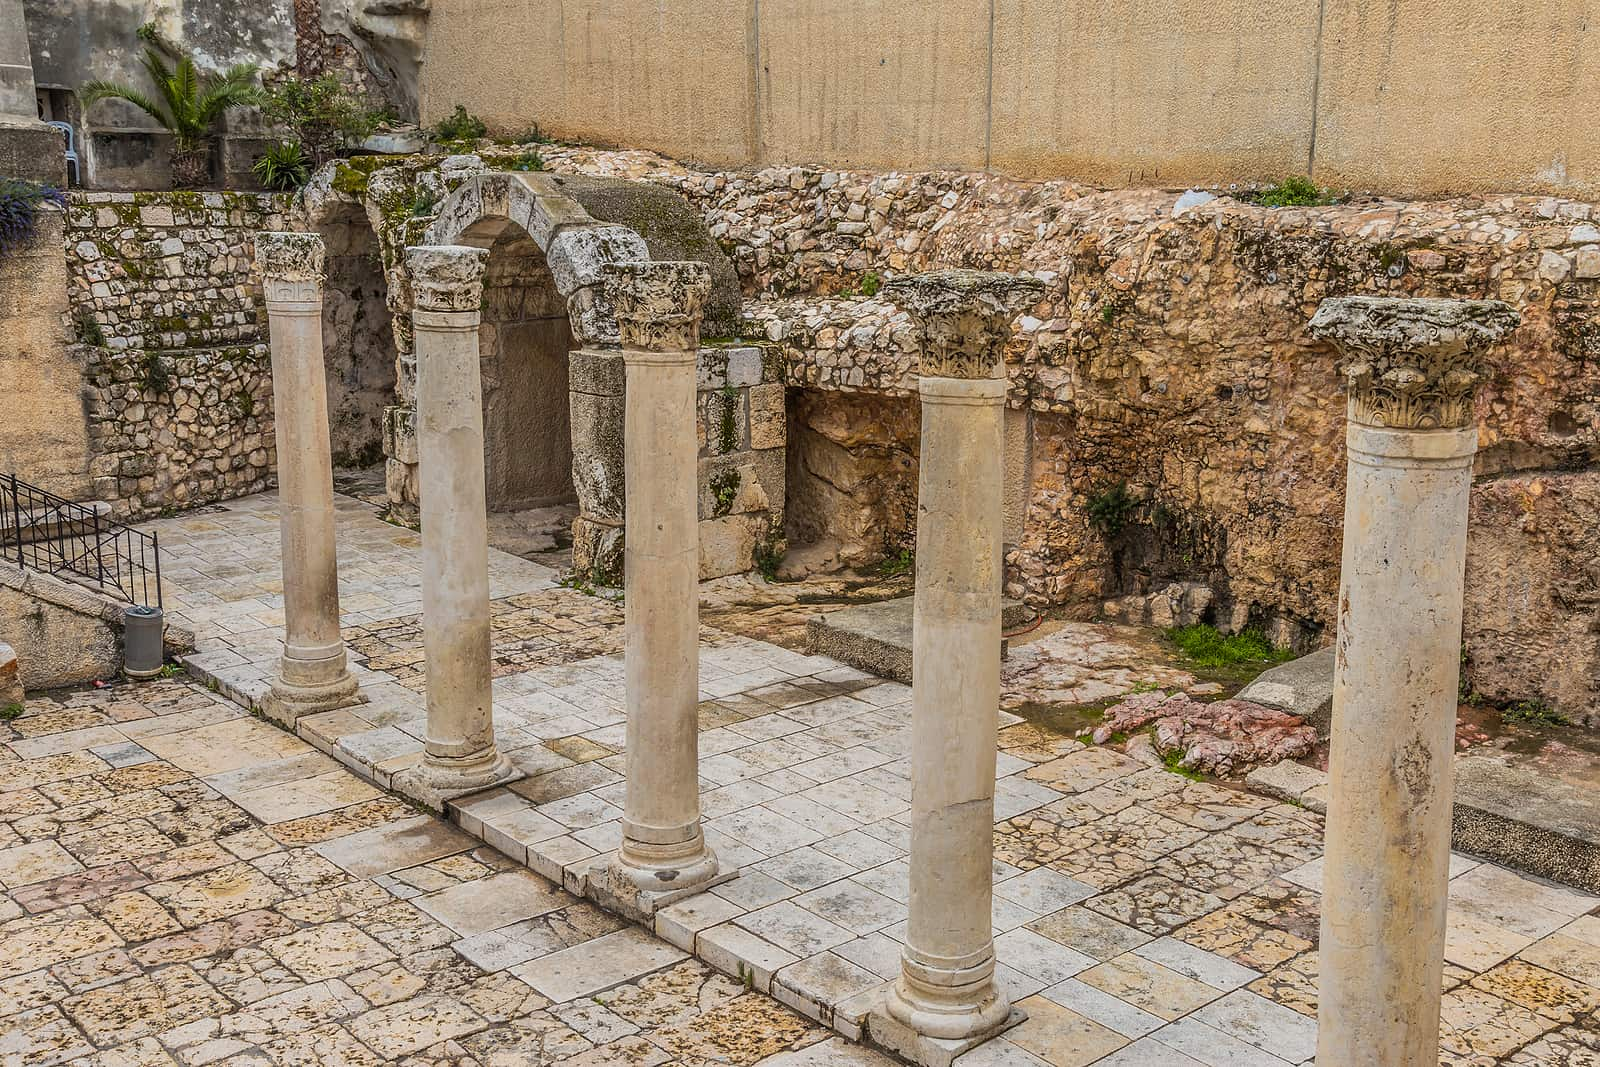 Cardo Maximus Roman Pillars. The remains of ancient Roman pillars located in the Jewish Quarter in Jerusalem Israel. one of the central places in Jerusalem in the past